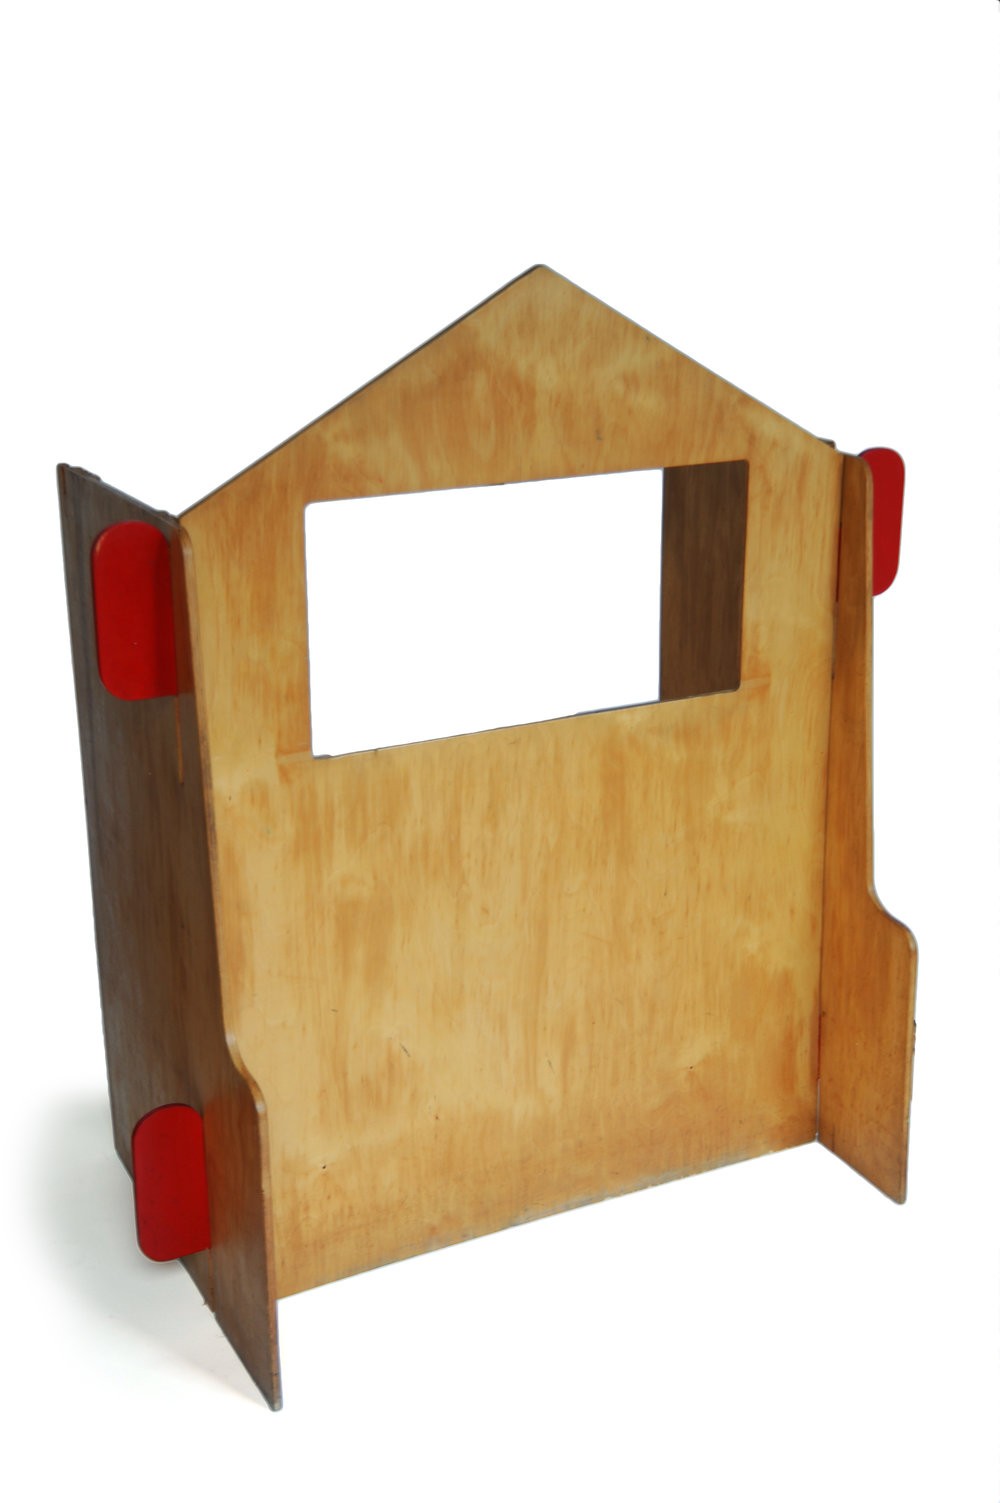 Ado Puppet Theater Ko Verzuu/Ado ADO Netherlands 1950s-1960s veneered wood H 49.5 W 43.5 D 20.5 (side: 39.5) LIST PRICE: Cube $2,100 DESIGNER DISCOUNT PRICE: $1,785 LEAD TIME:3-5 Days Shipping & Handling QUANTITY IN STOCK: 1 ONLINE PLATFORMS: kM Web, Artsy, 1st Dibs